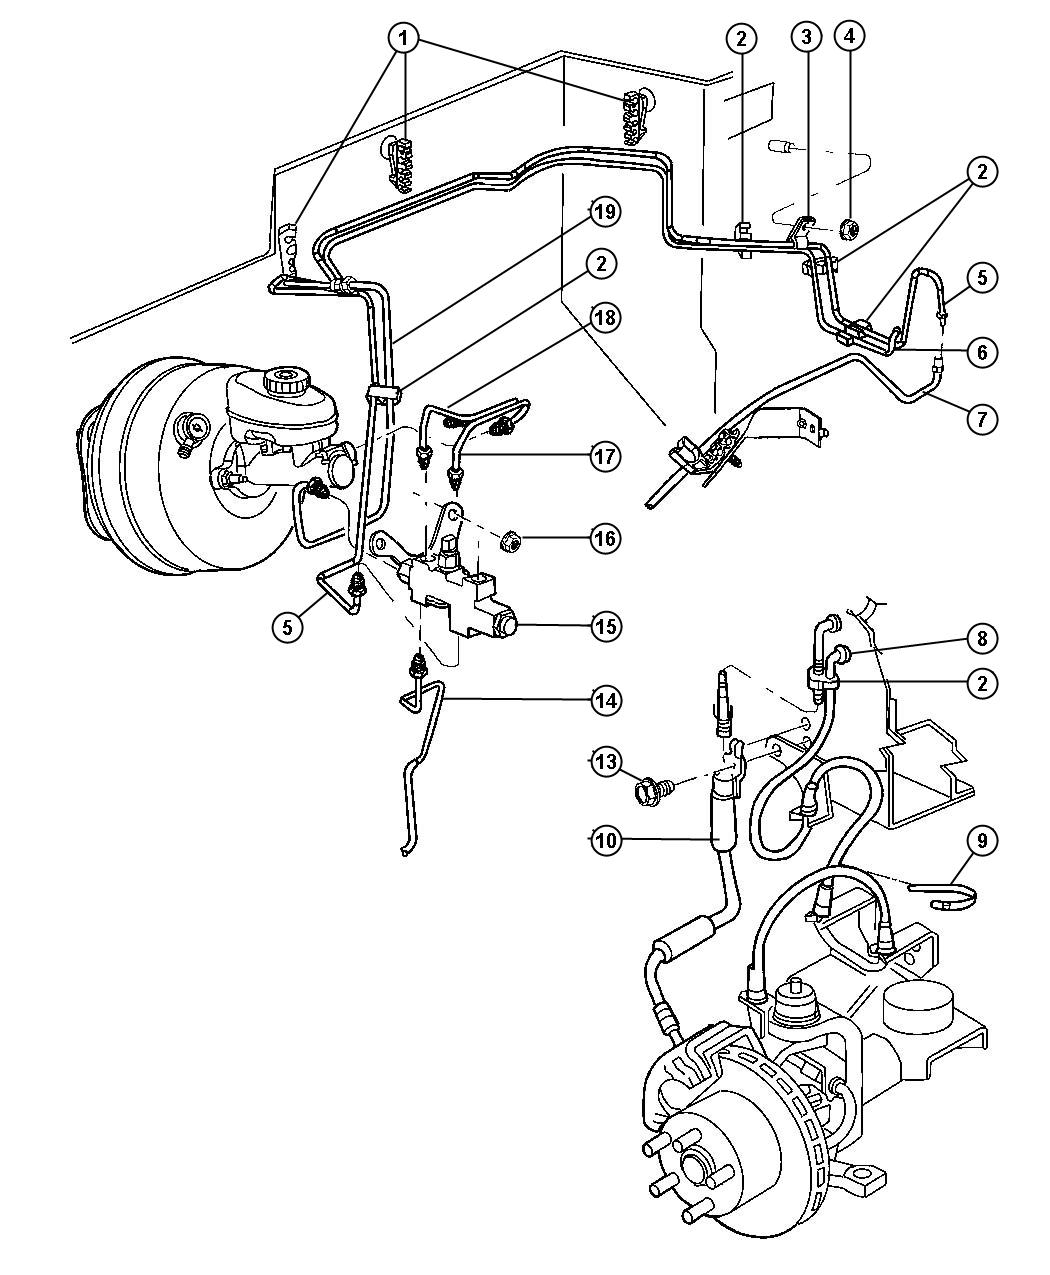 99 kia sportage fuse box diagram , accu drive led dimmer switch wiring  diagram , wiring diagram for a voltmeter , 1969 dodge charger engine diagram